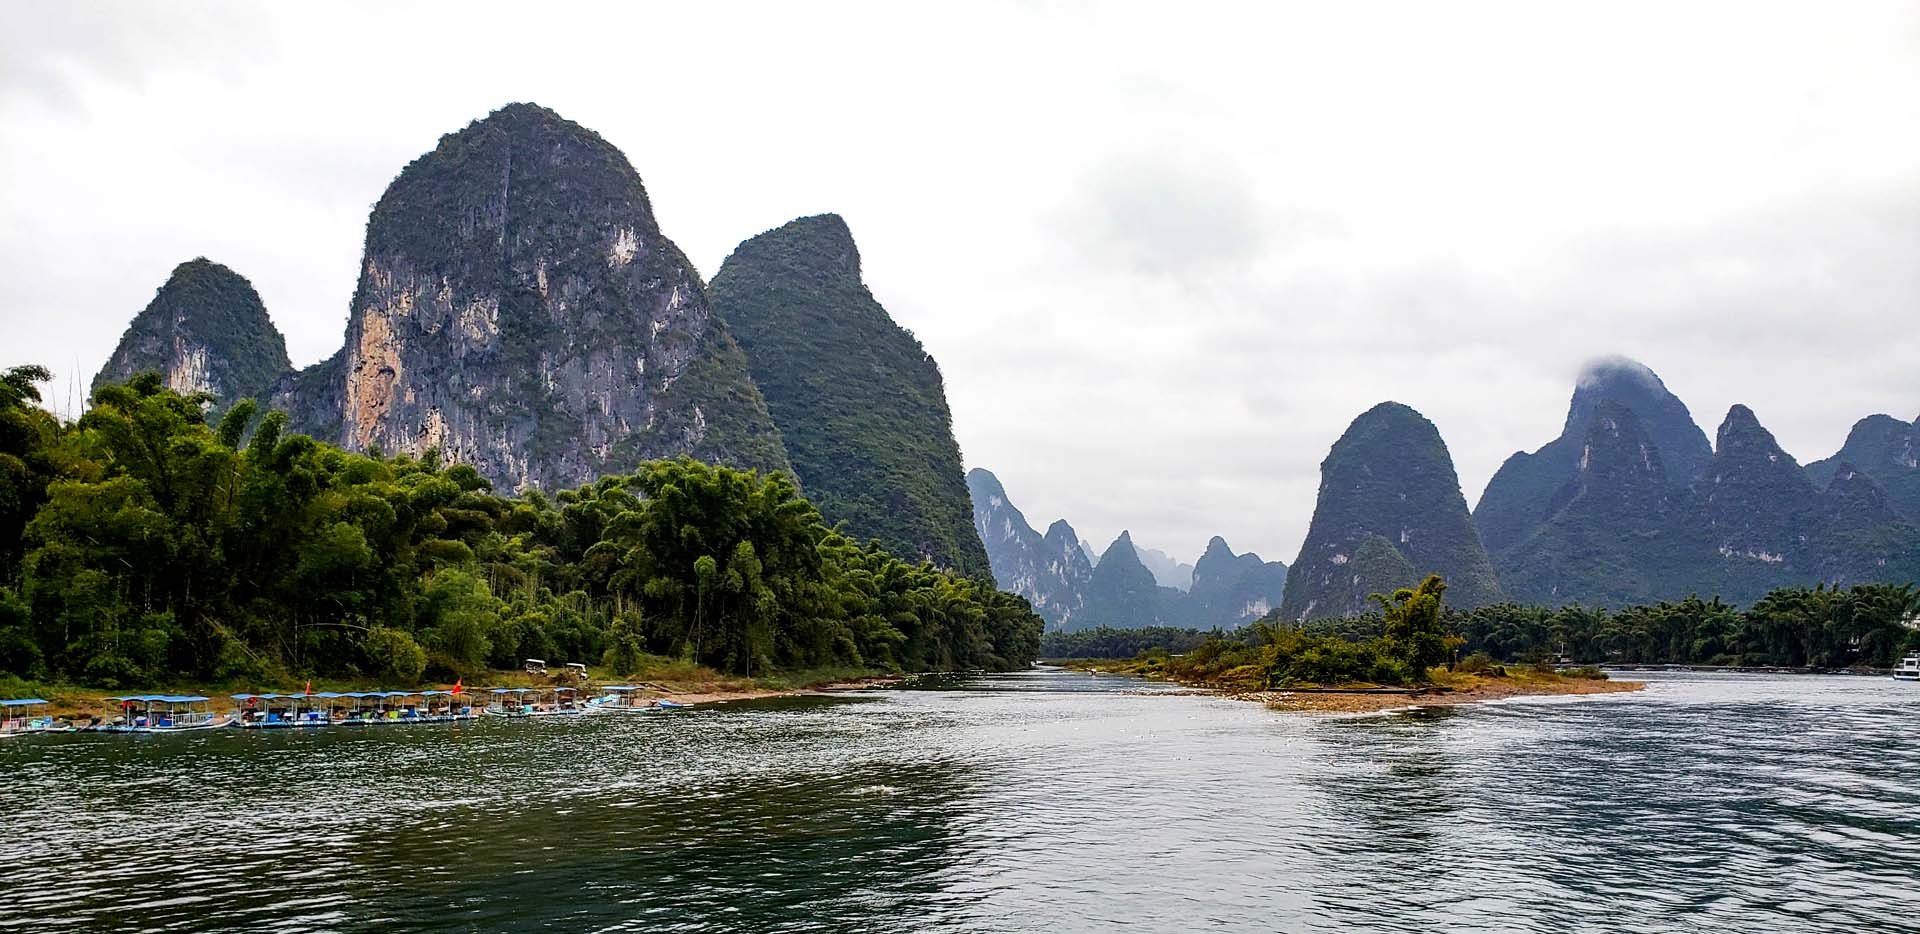 Li River Karst Mountains Boat Tour